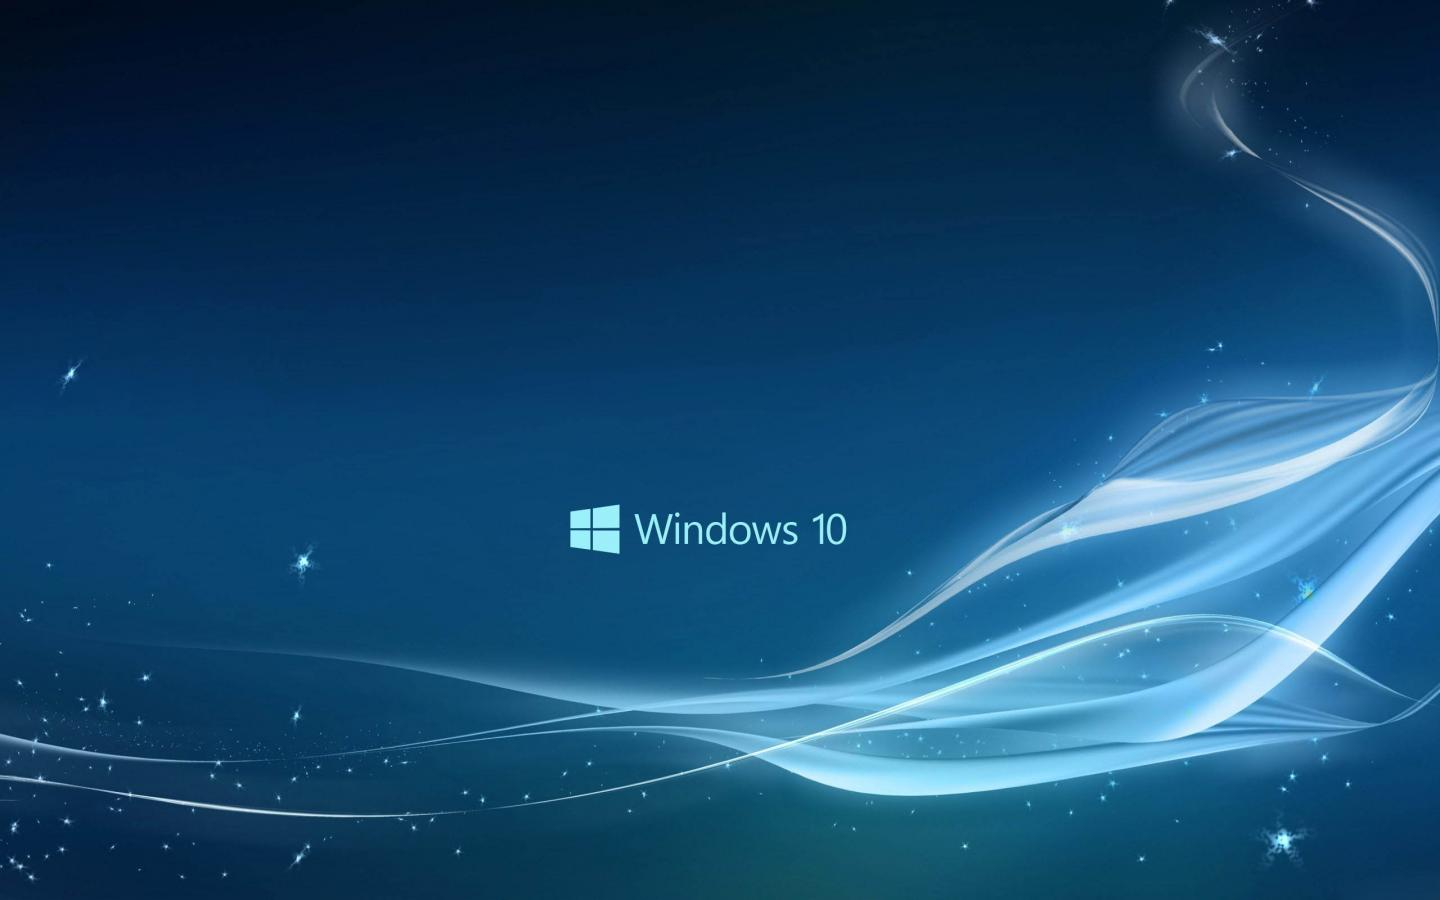 Windows 10 Wallpaper In Blue Abstract Stars And Waves Hd